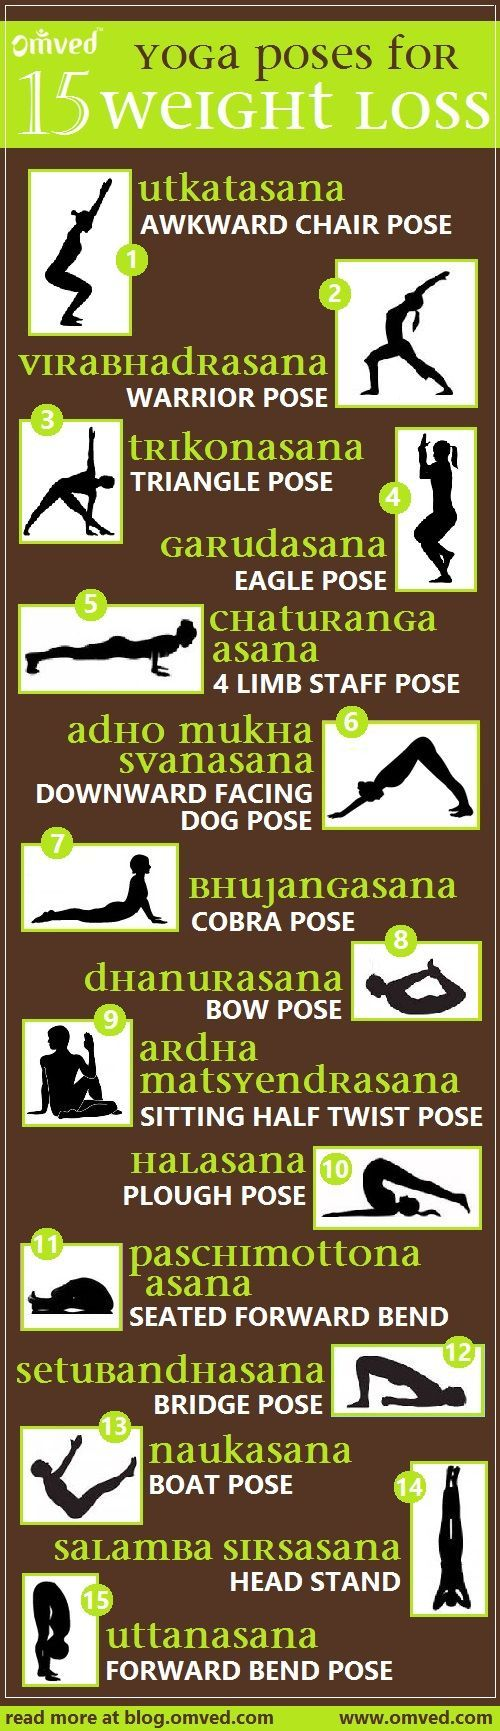 See more here ► https://www.youtube.com/watch?v=t6ic0NKYUMU Tags: lose your belly fat, i need to lose belly fat fast, quickly lose belly fat - Top 15 yoga poses for WEIGHT LOSS - Although Yoga is not always the popular choice for serious fat burning or weight loss, yet it is an extremely effective tool specially for fighting stubborn fat stores. Yoga offers a well-balanced fitness routine that i #exercise #diet #workout #fitness #health